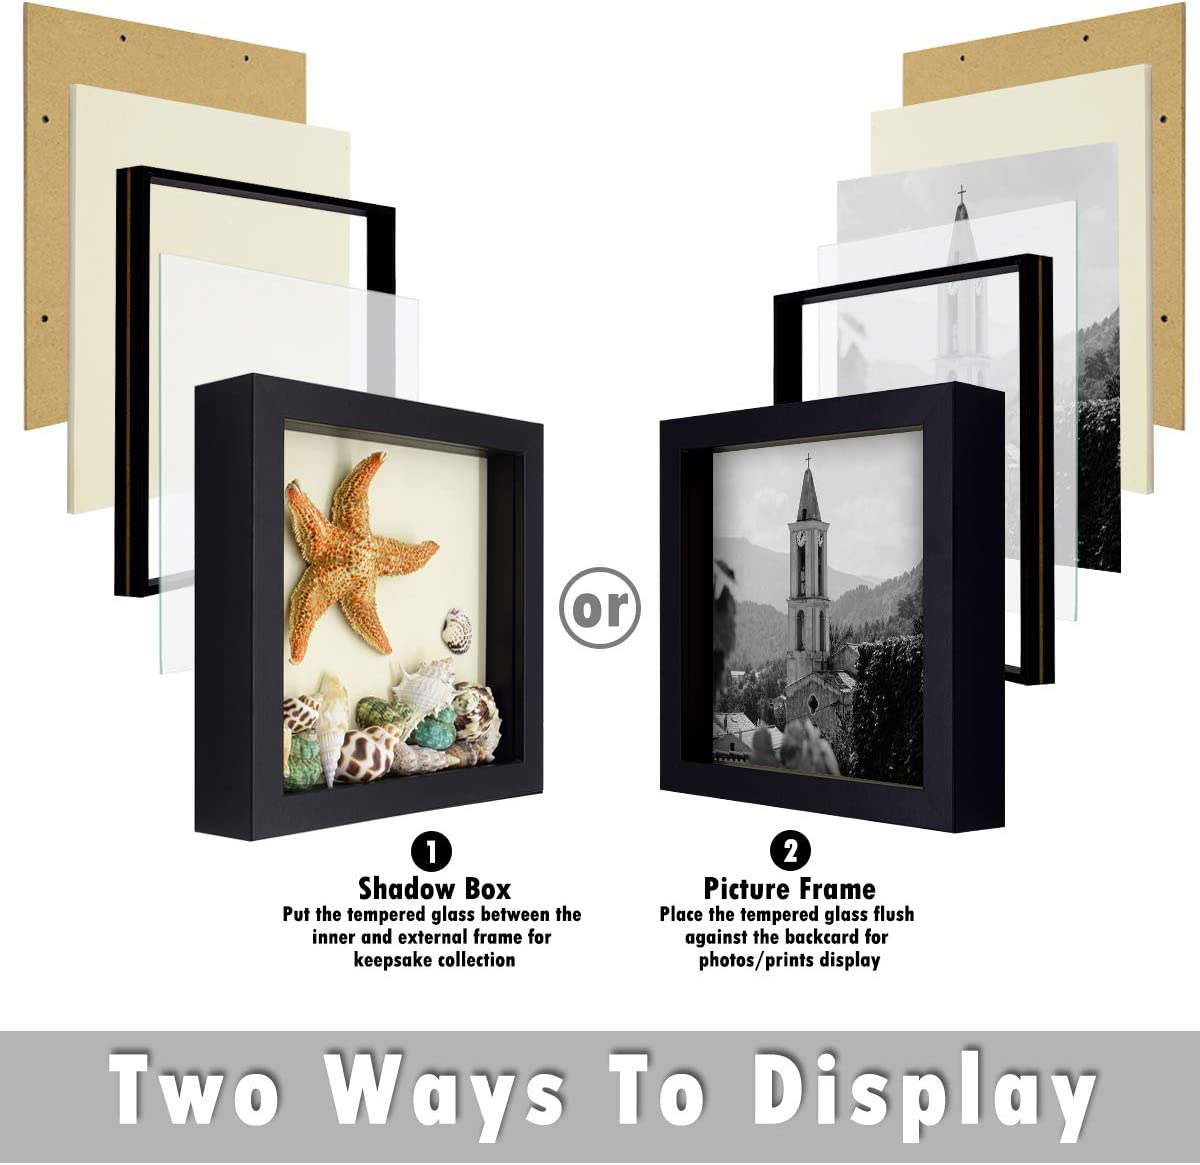 Black Color Swivel Tabs Sawtooth Hanger Receipts Holder Frame Plane Tickets Great for Travel Souvenirs 2 Set Black, 8x8 Brochures 8x8 Shadow Box Wall Display Frametory Pictures